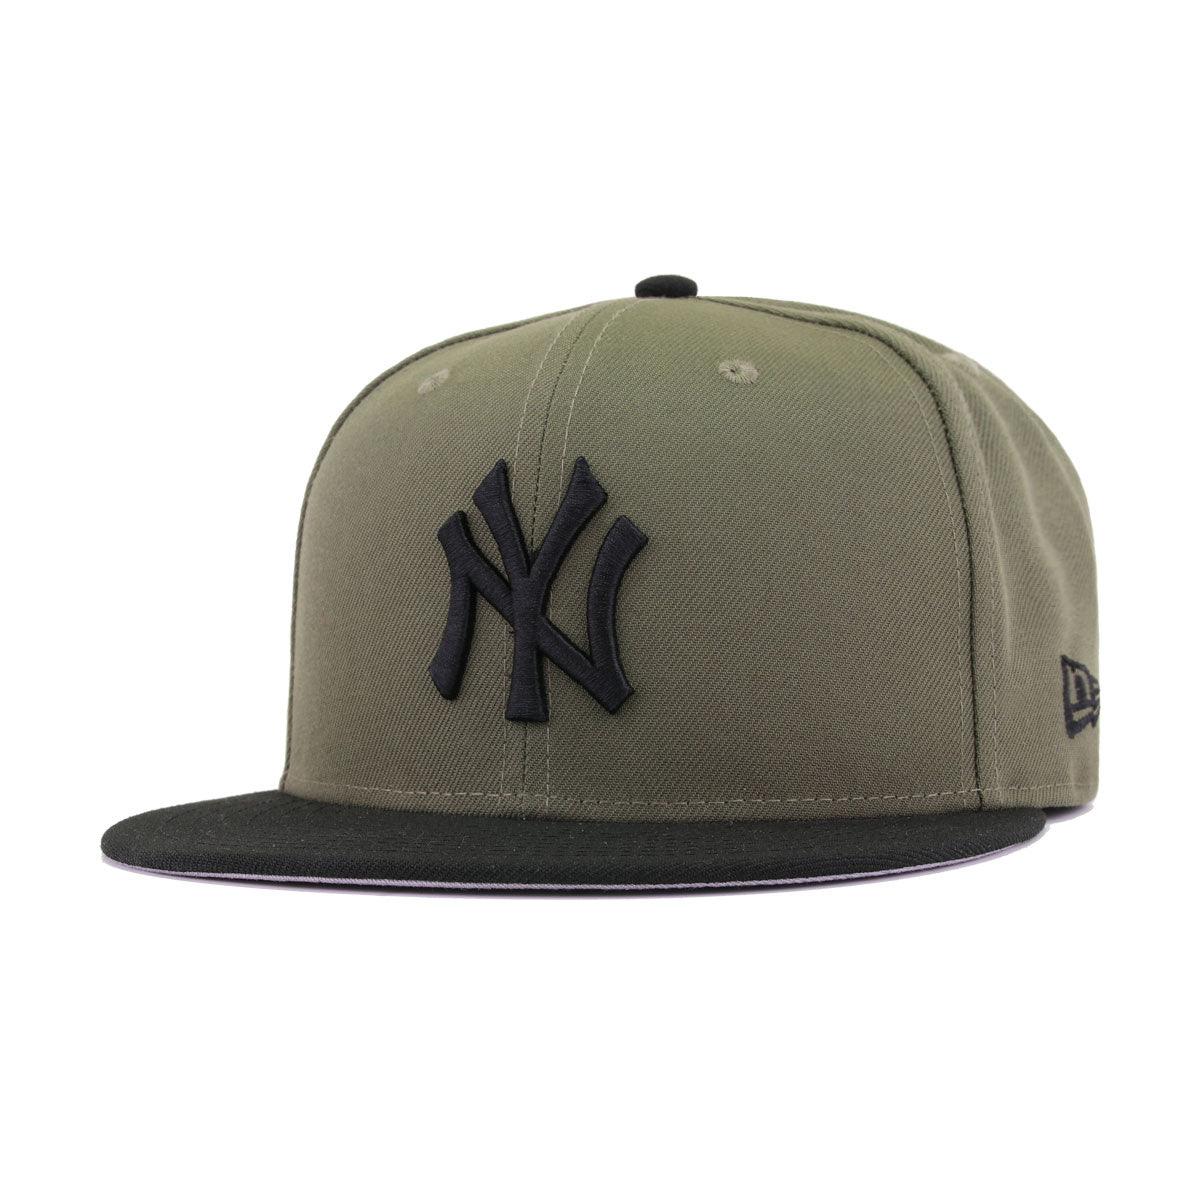 441904a149ee6 New York Yankees New Olive Black New Era 59Fifty Fitted